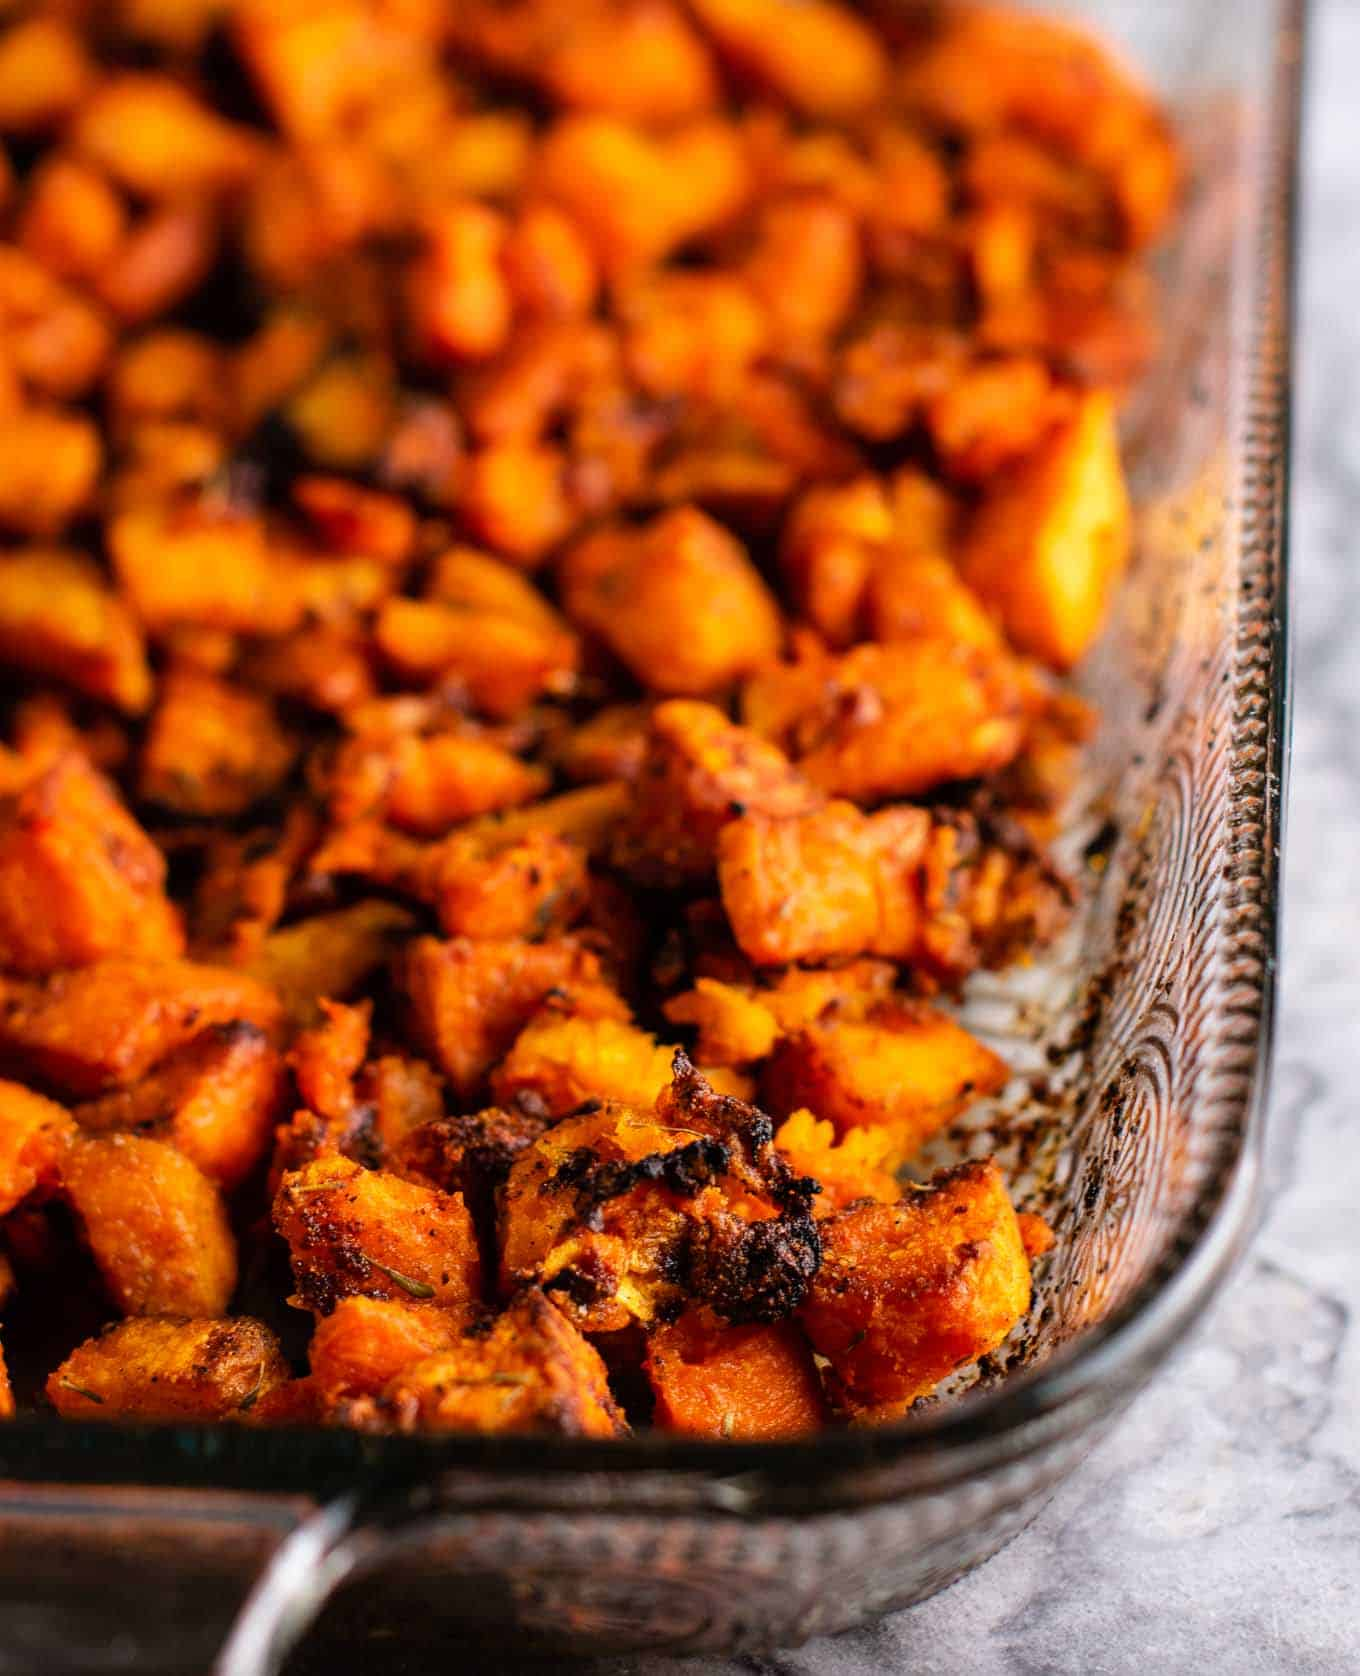 Sweet potato breakfast hash recipe with caramelized garlic and onion. So much flavor - this is perfect for breakfast! #sweetpotatohash #sweetpotato #veganbreakfast #vegan #breakfasthash #glutenfree #dairyfree #vegetarian